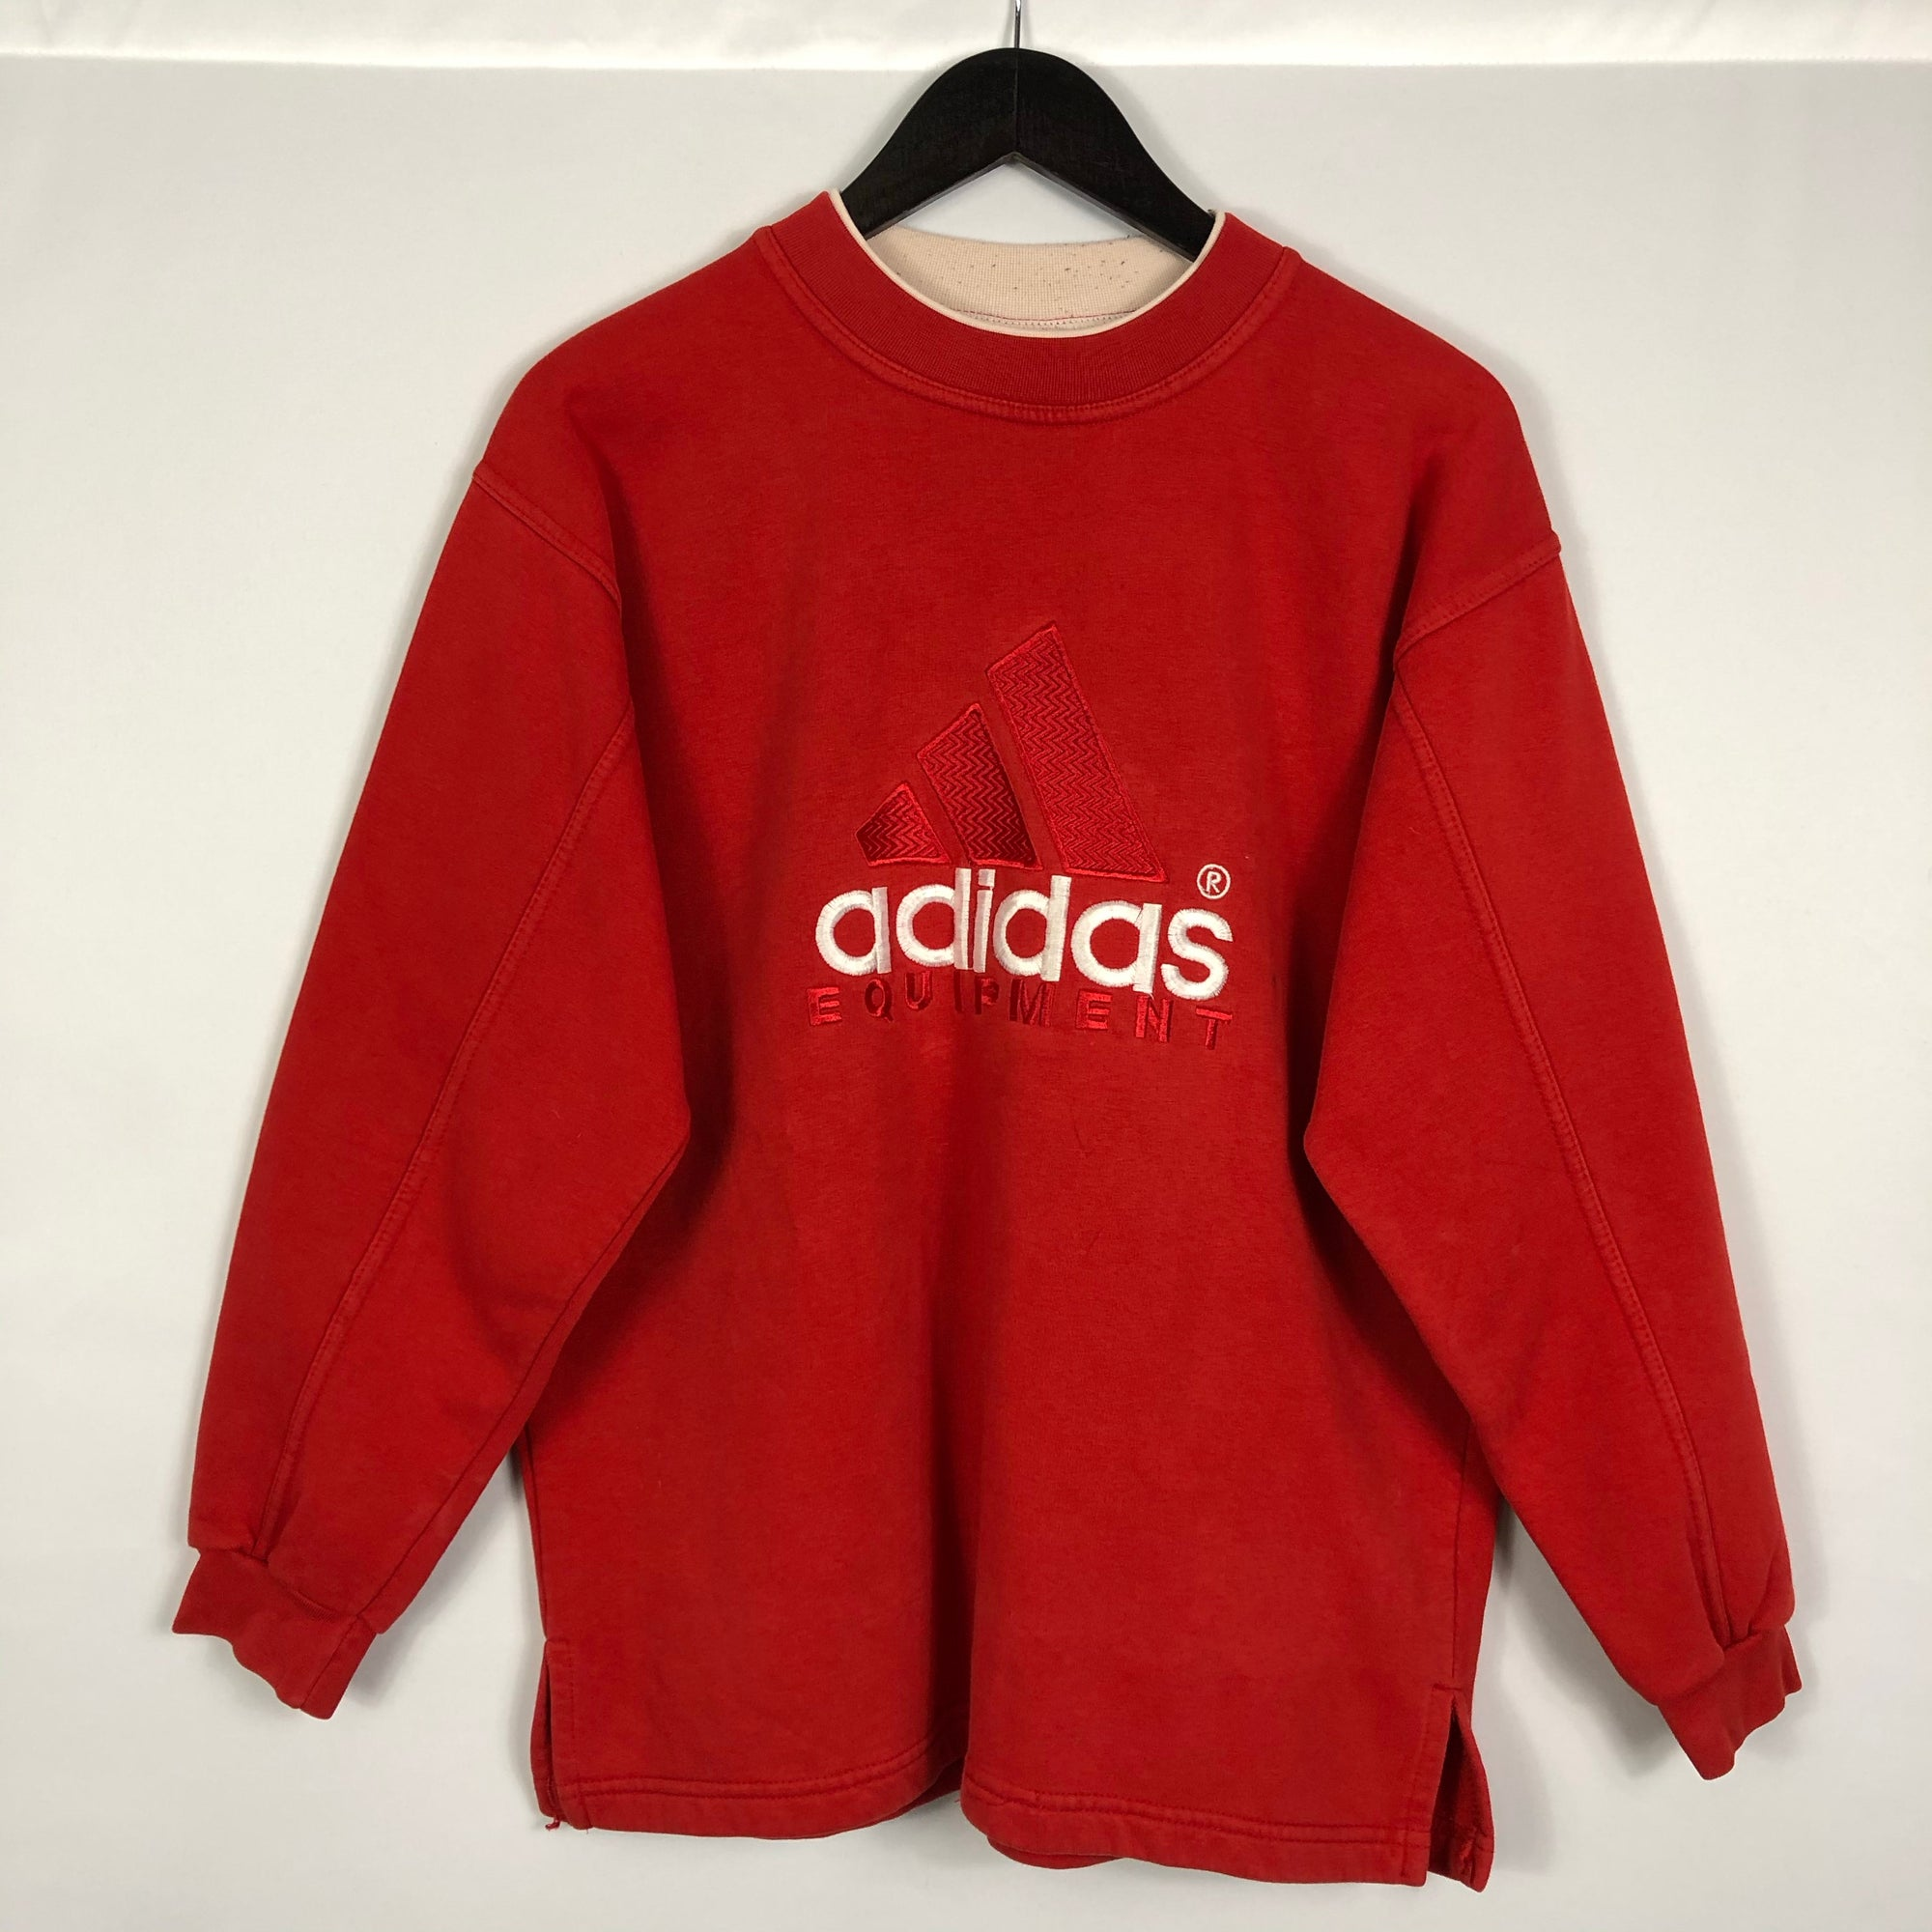 Vintage Adidas Equipment Sweatshirt in Red - Women's Medium/Men's Small